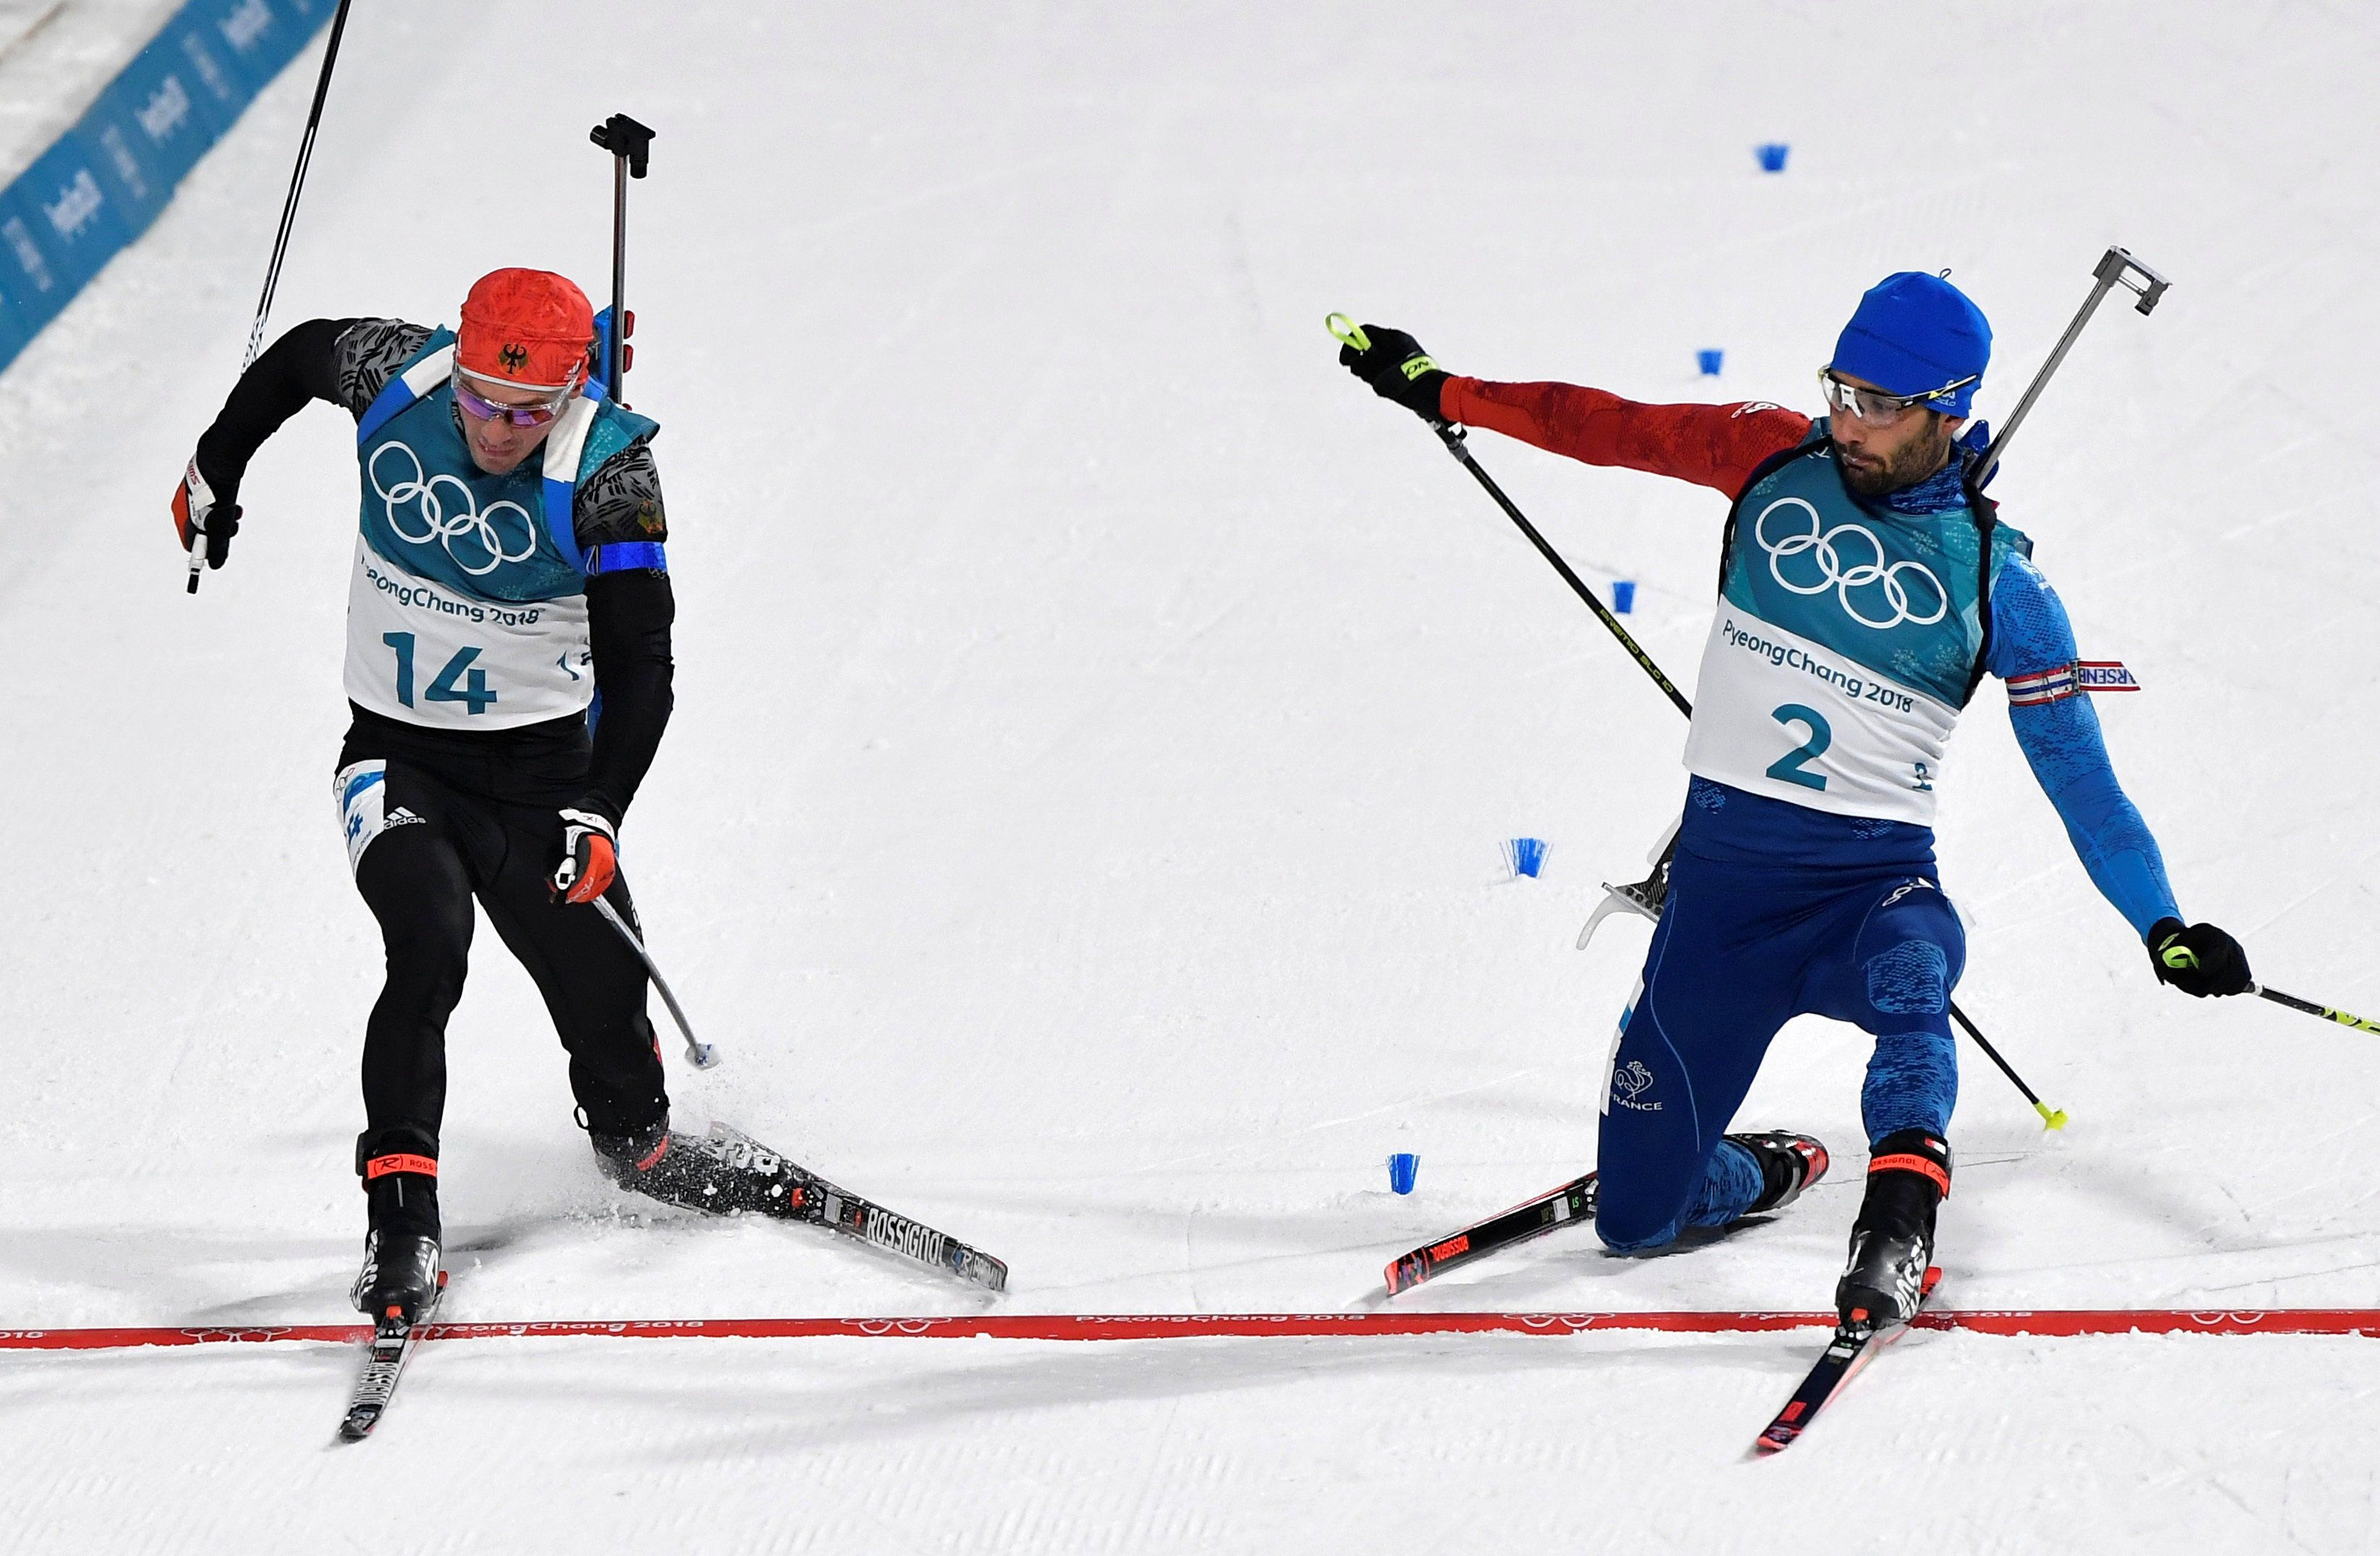 Simon Schempp of Germany, left, and Martin Fourcade of France, right, race to the finish line during Sunday'sMen's 15 k